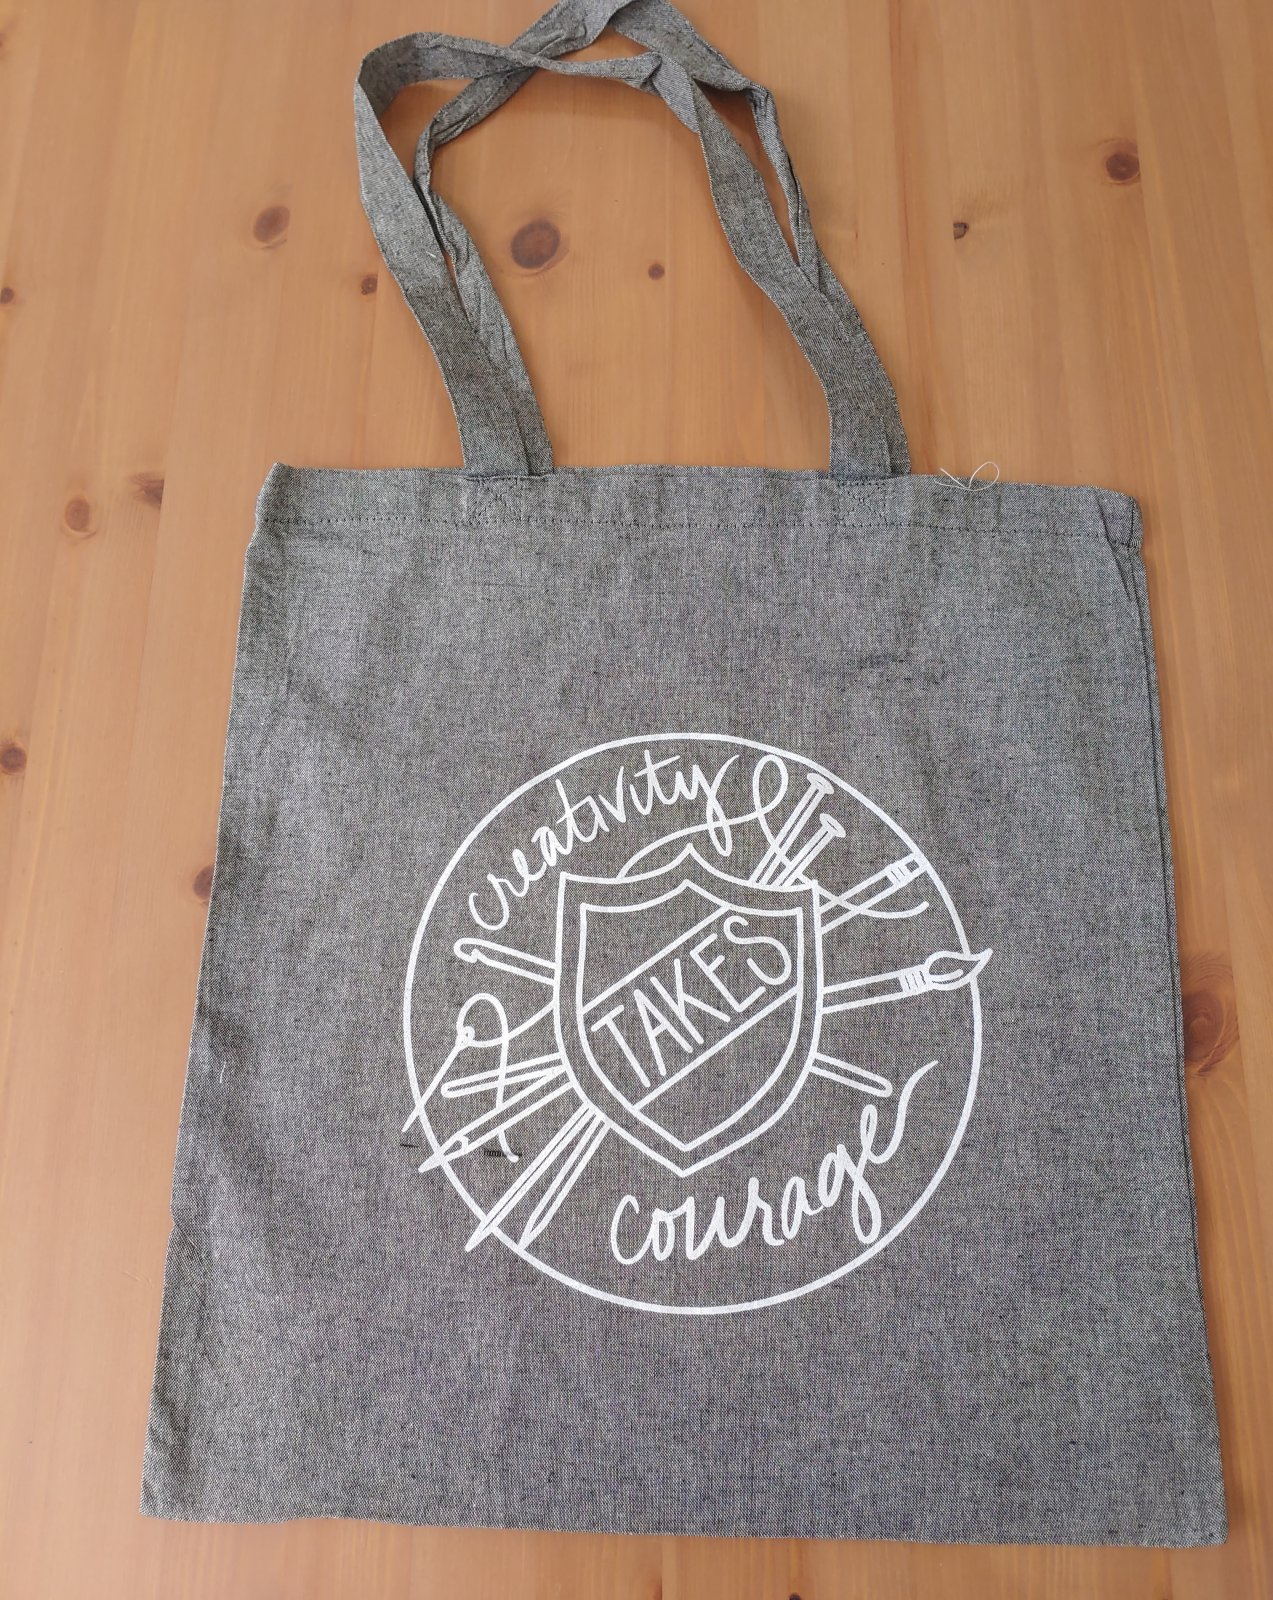 Creativity Takes Courage Bag